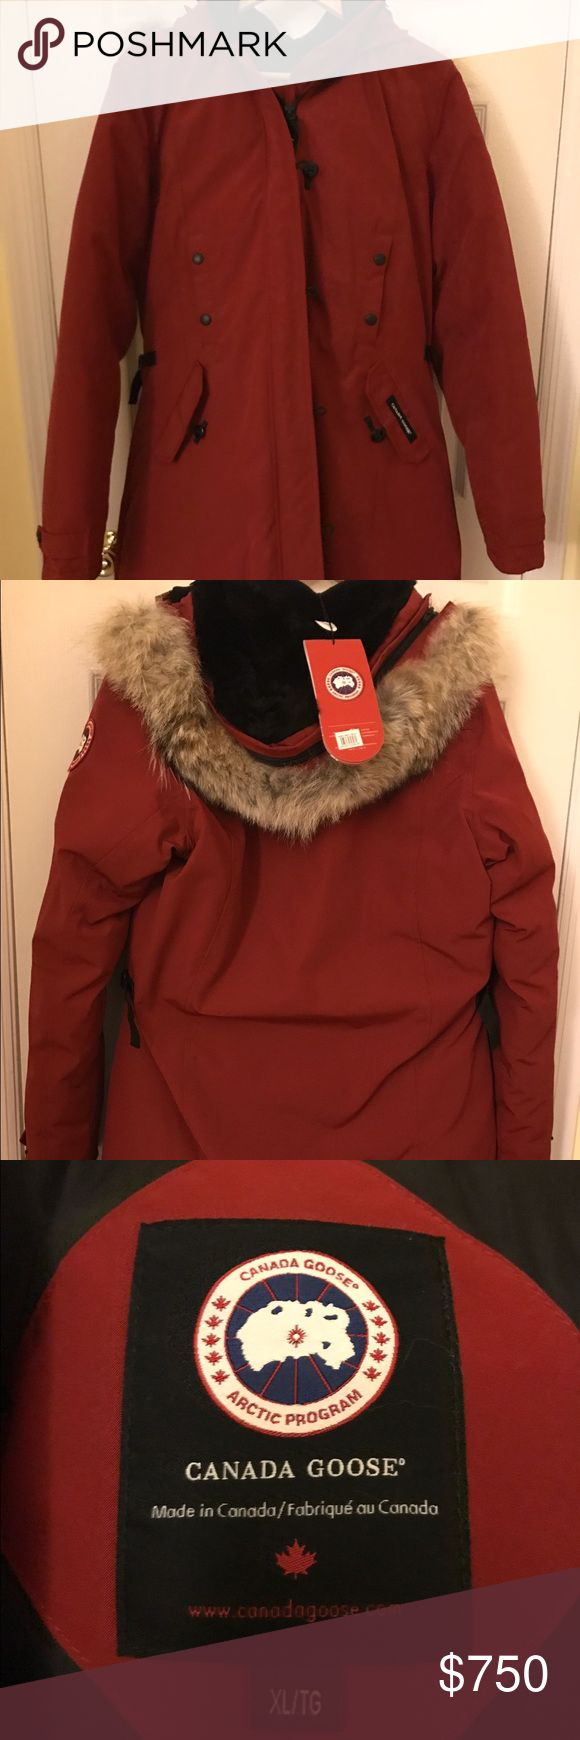 Canada Goose Women's Parka Authentic Canada Goose women's parka. Brand new, never worn with tags size XL. Purchased for myself, but is too large for me. No trades! Canada Goose Jackets & Coats